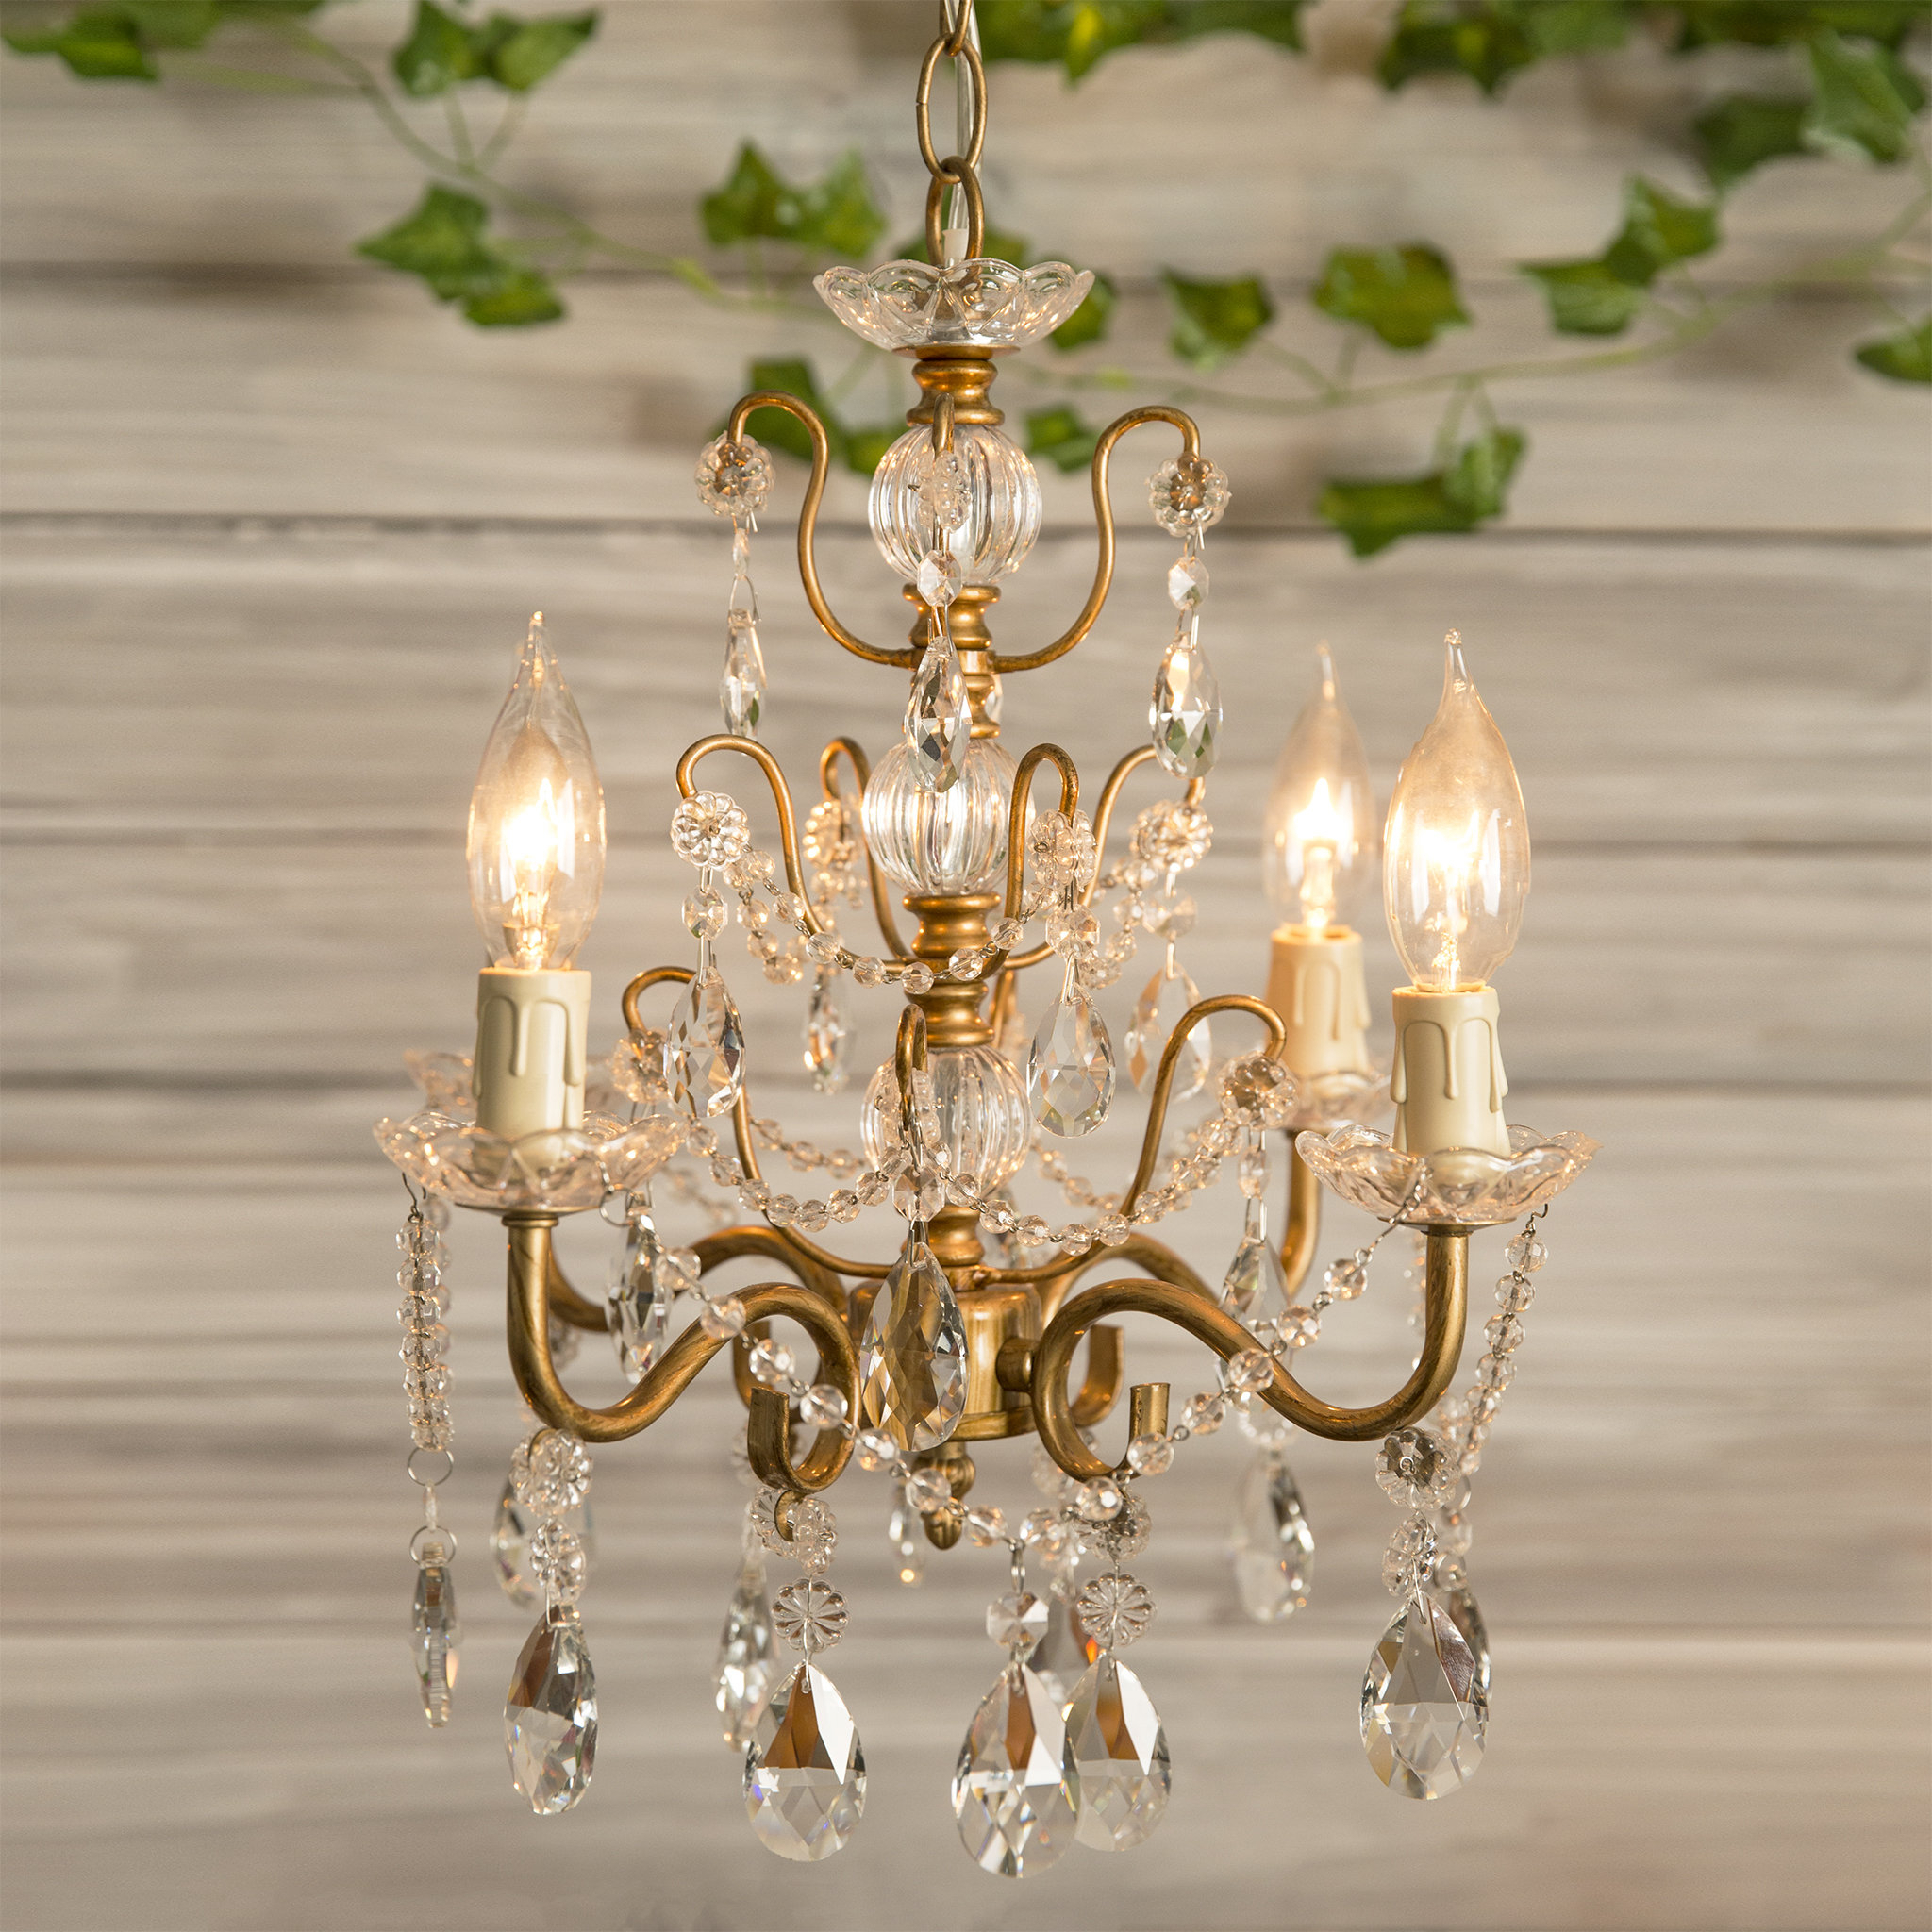 Oriana 4 Light Single Geometric Chandeliers For Fashionable Blanchette 4 Light Candle Style Chandelier (Gallery 20 of 20)